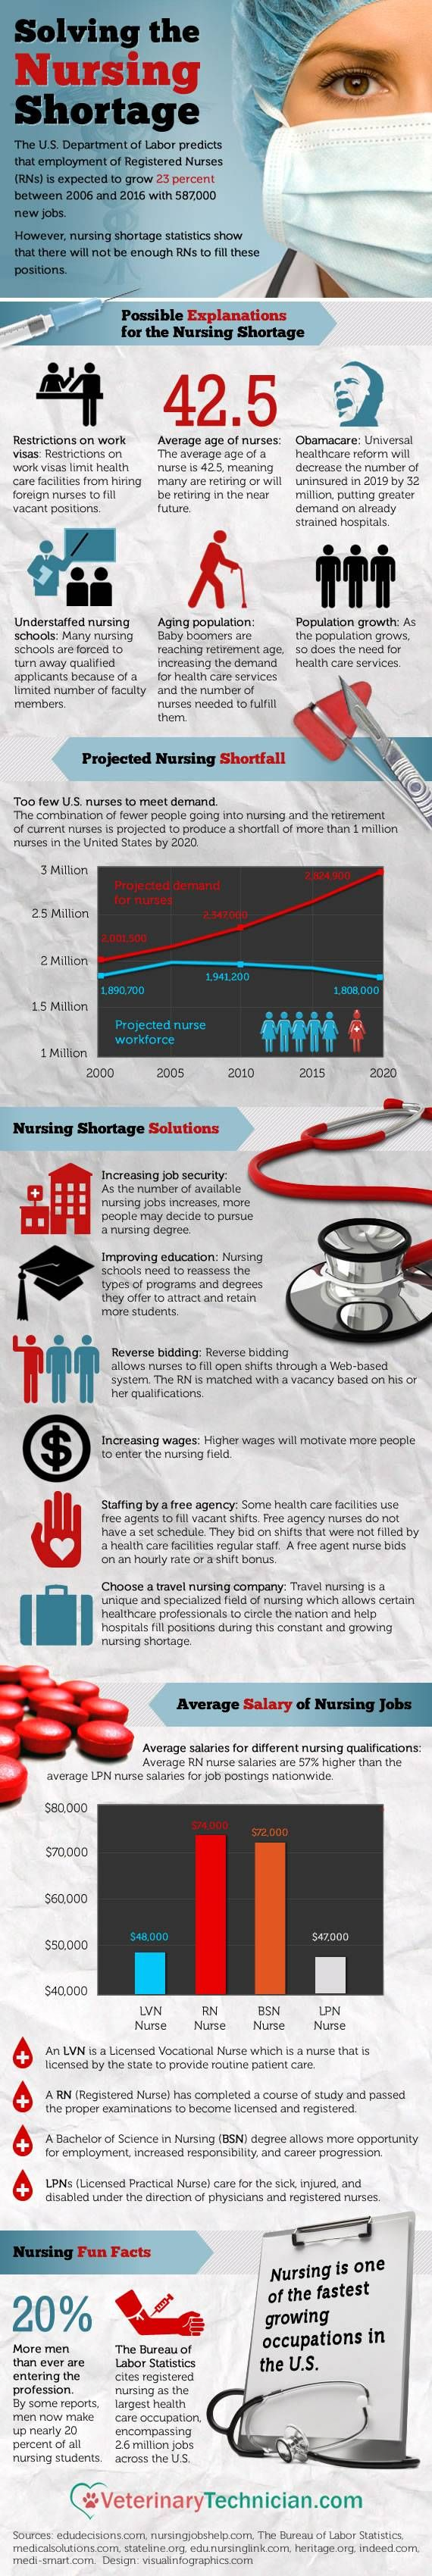 term paper on nursing shortage Research papers on the nursing shortage personal philosophy of nursing - essay on personal philosophy of nursing for nursing school research and.